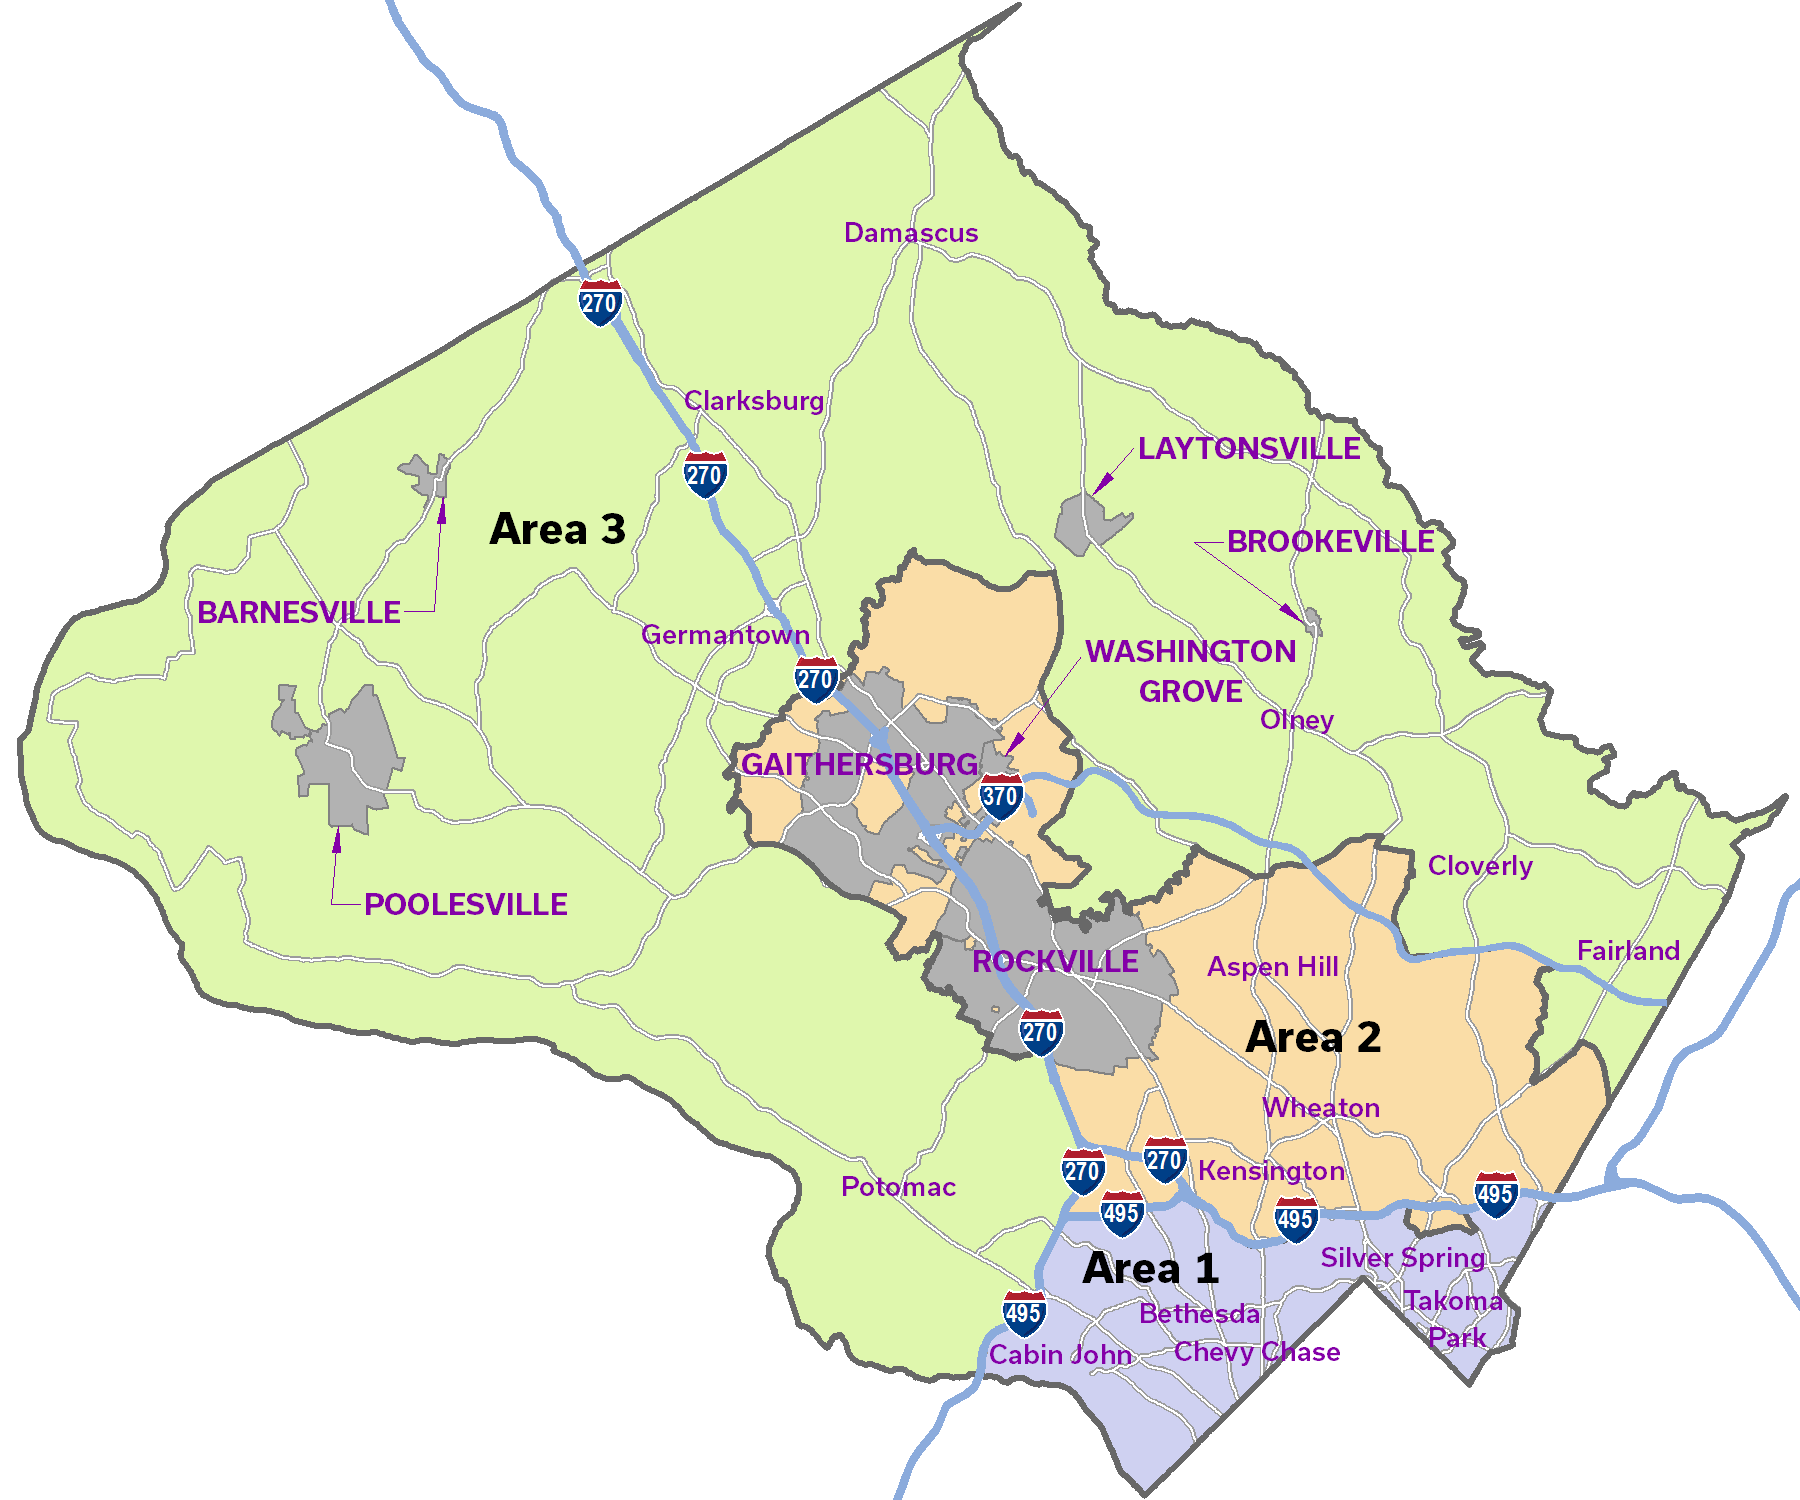 Areas map